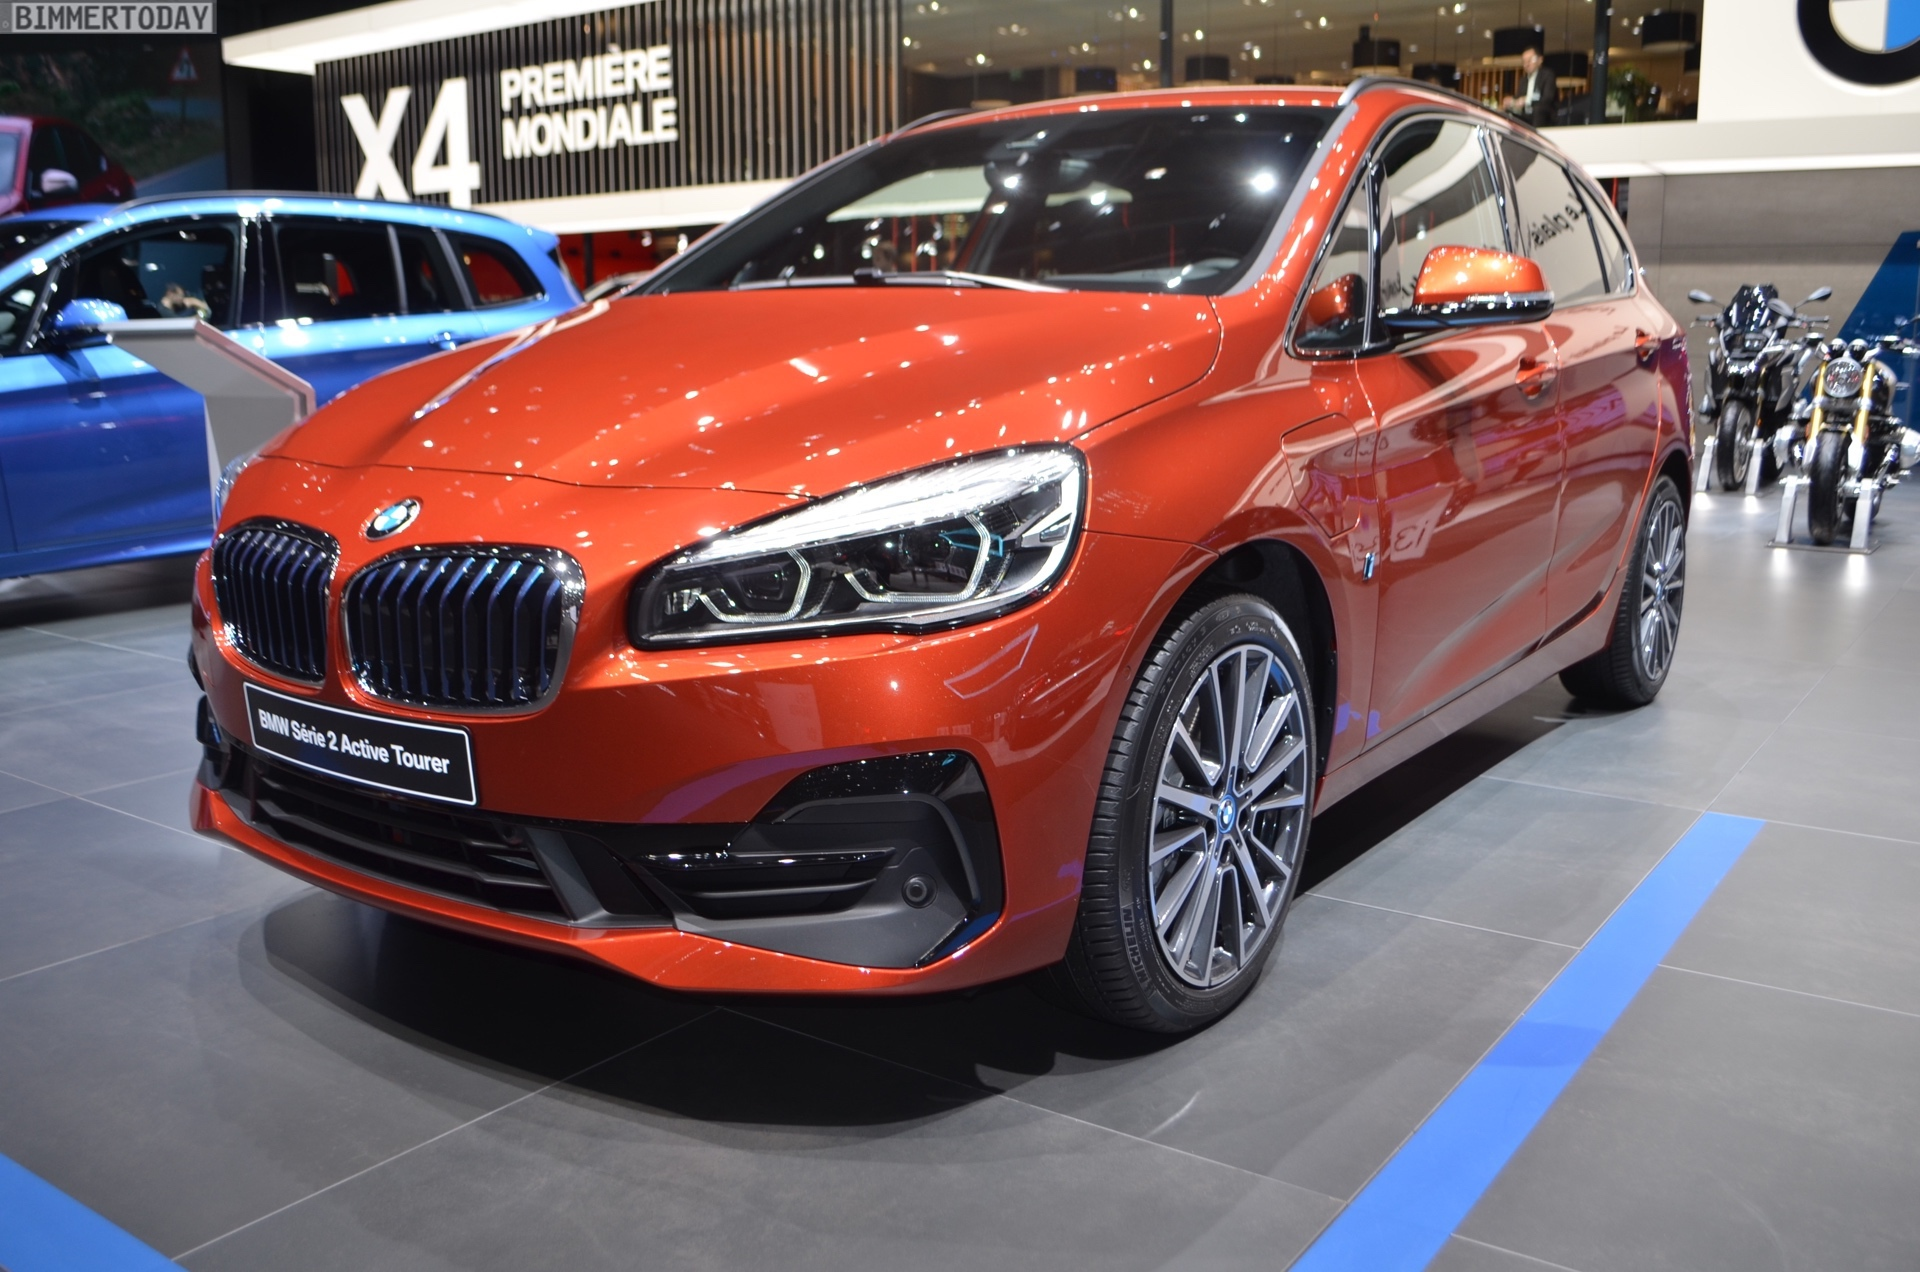 2018 Geneva Motor Show Bmw 2 Series Active Tourer